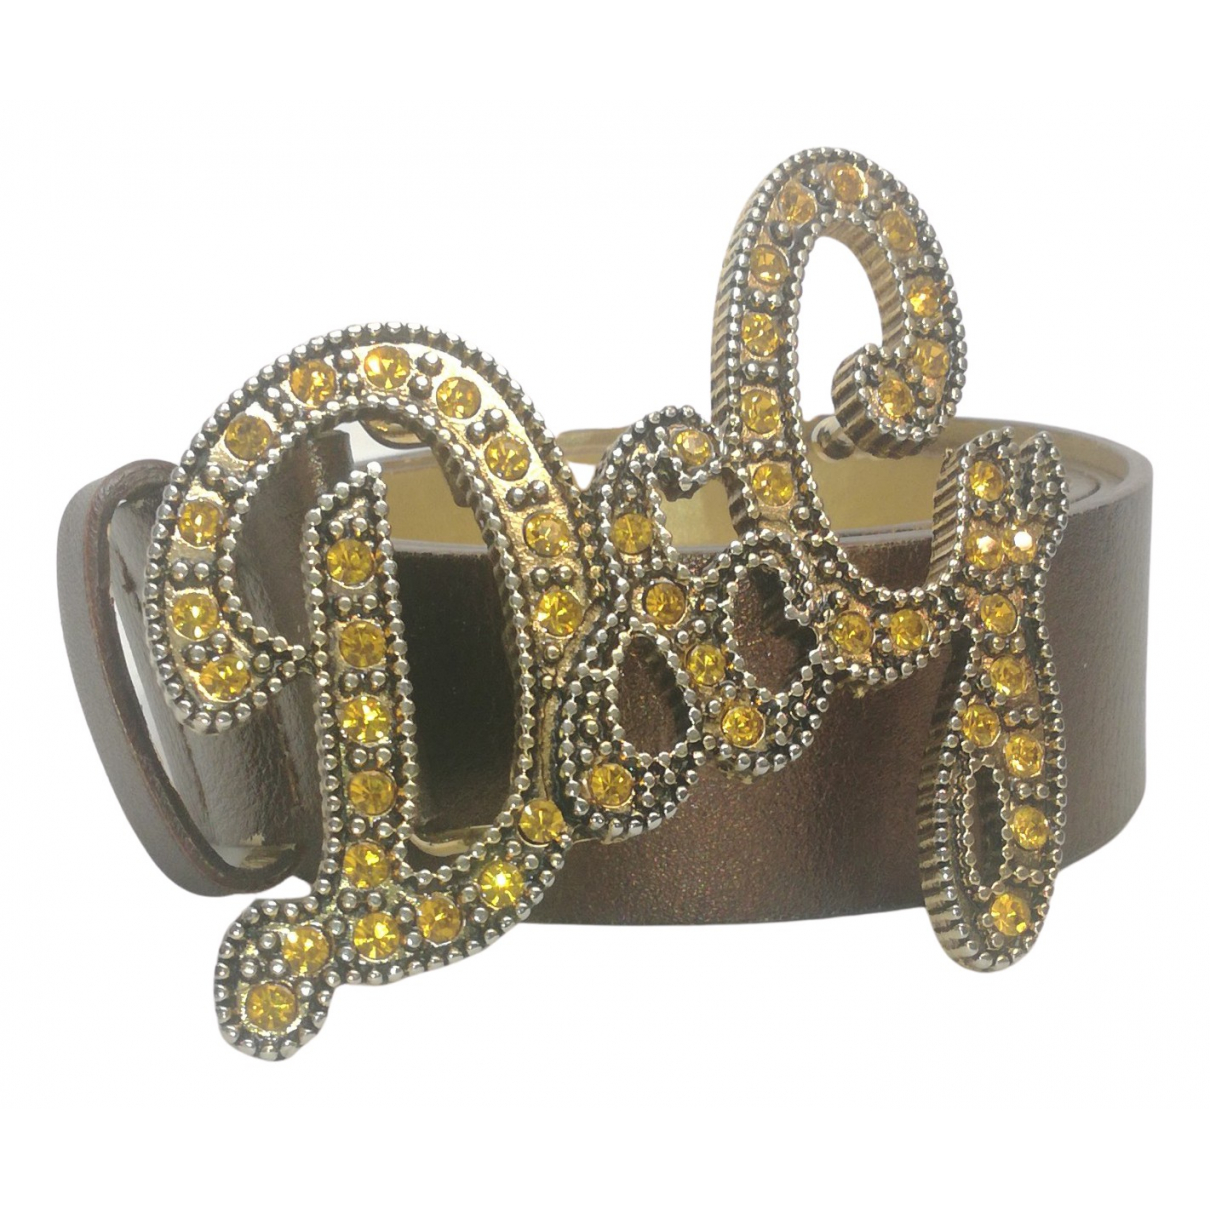 D&g \N Metallic Leather belt for Women 90 cm